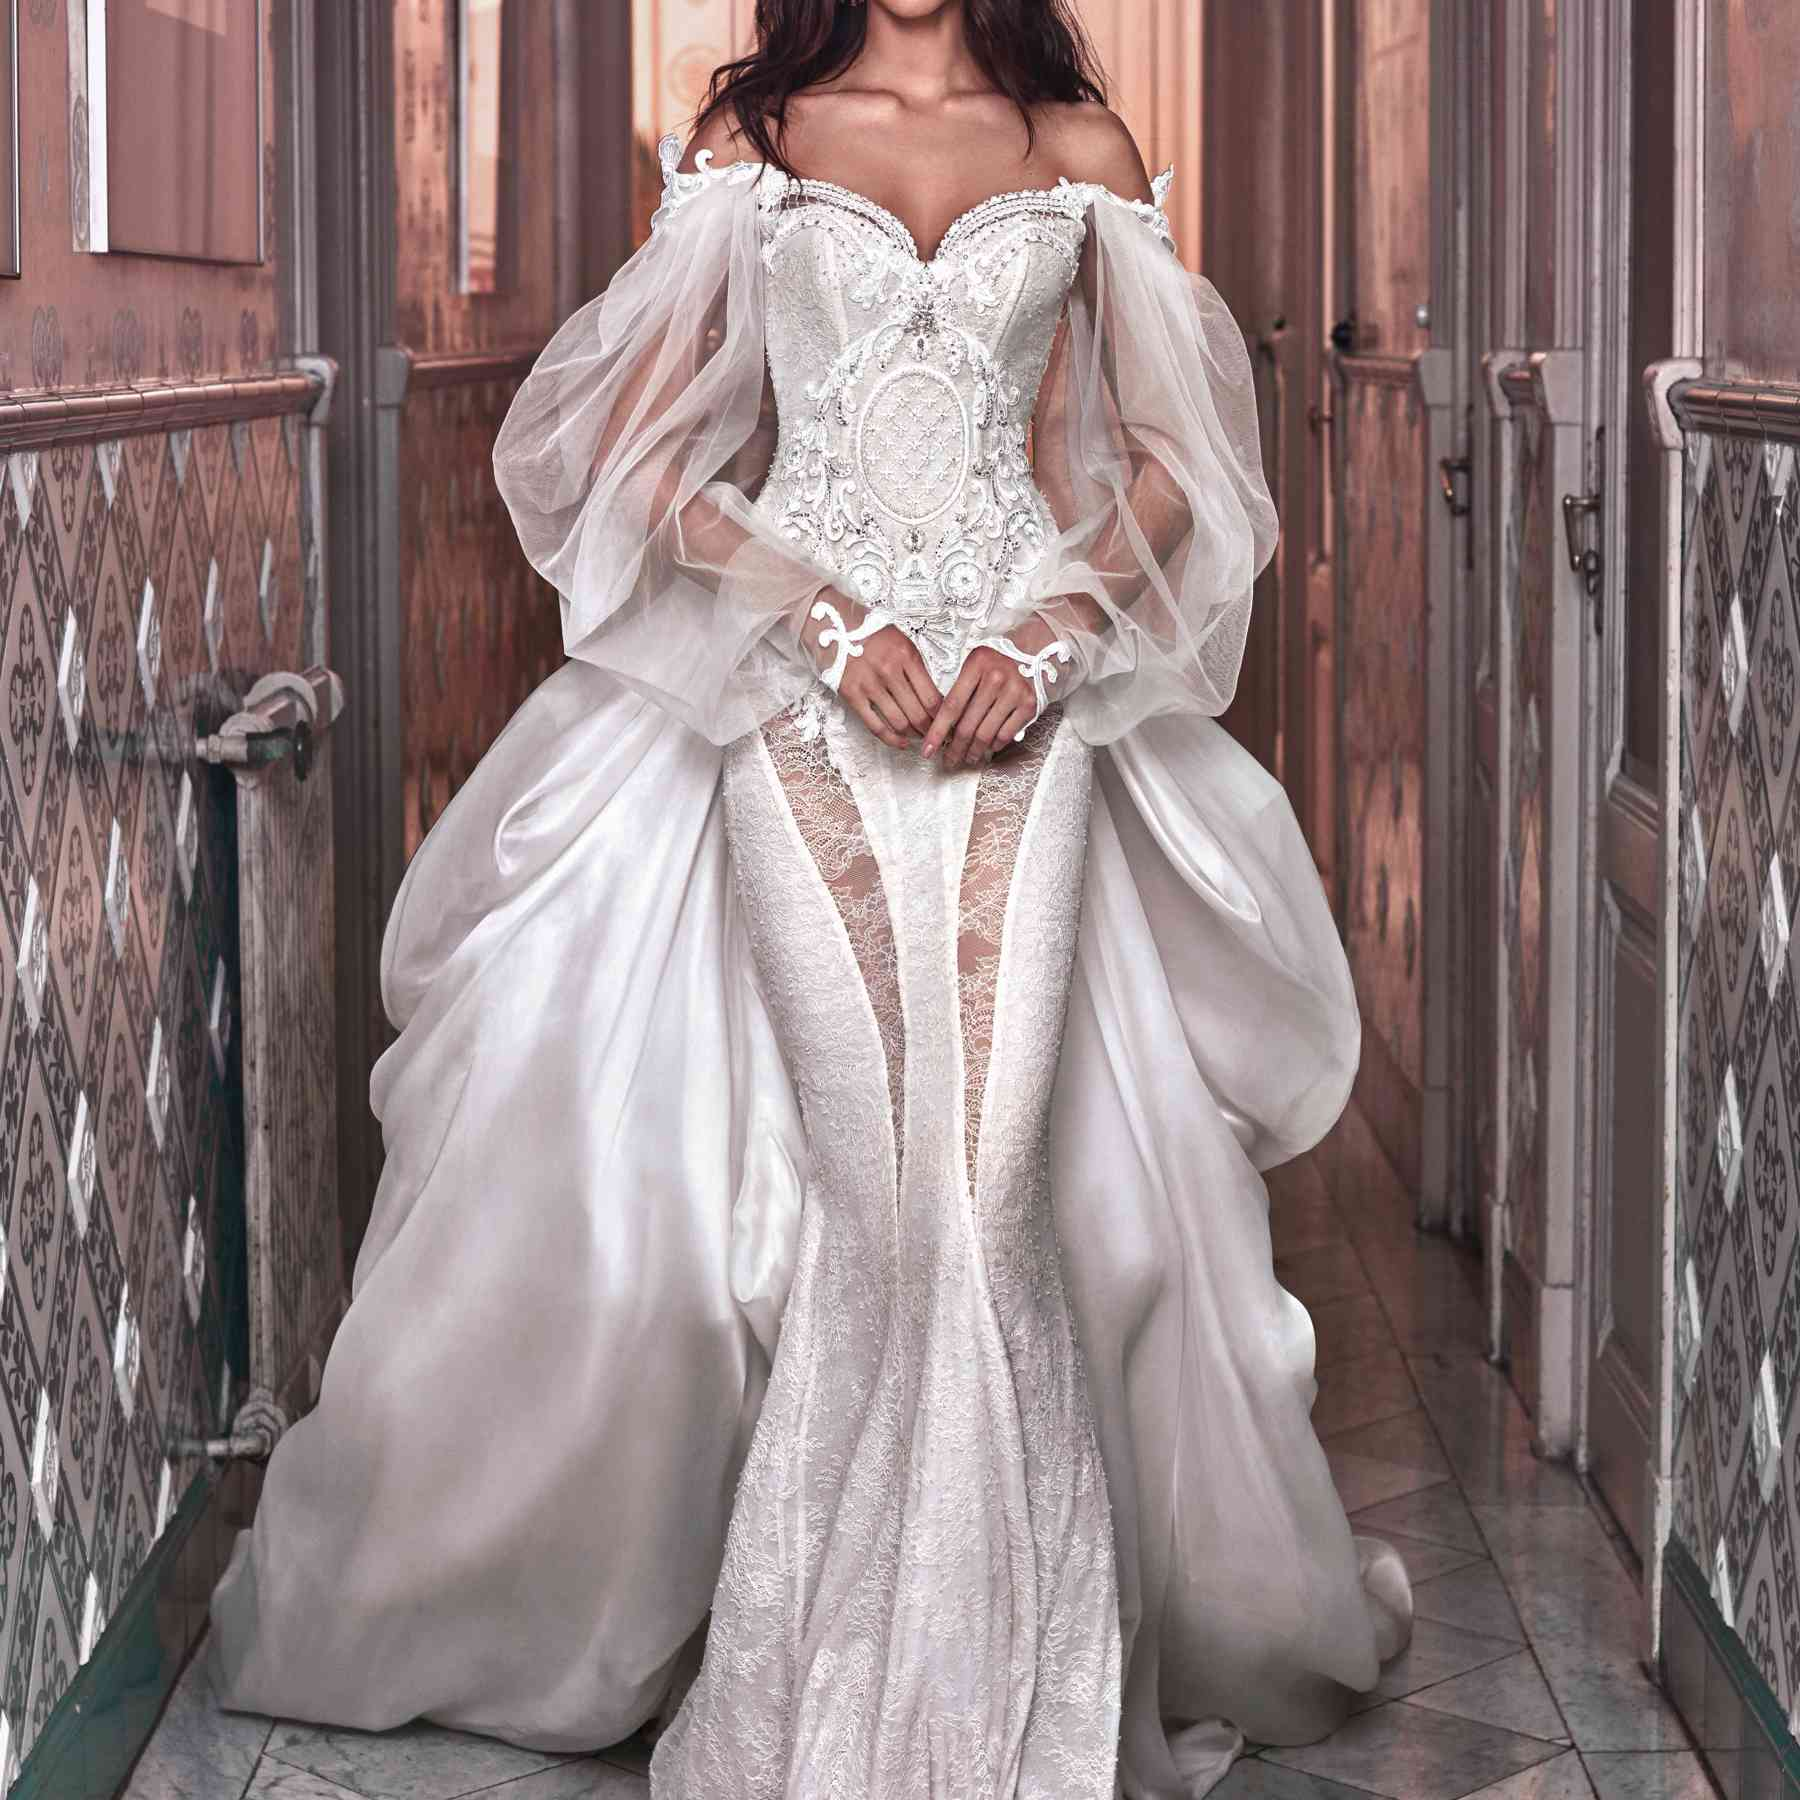 This Is The 12 000 Wedding Dress Beyonce Wore To Renew Her Vows